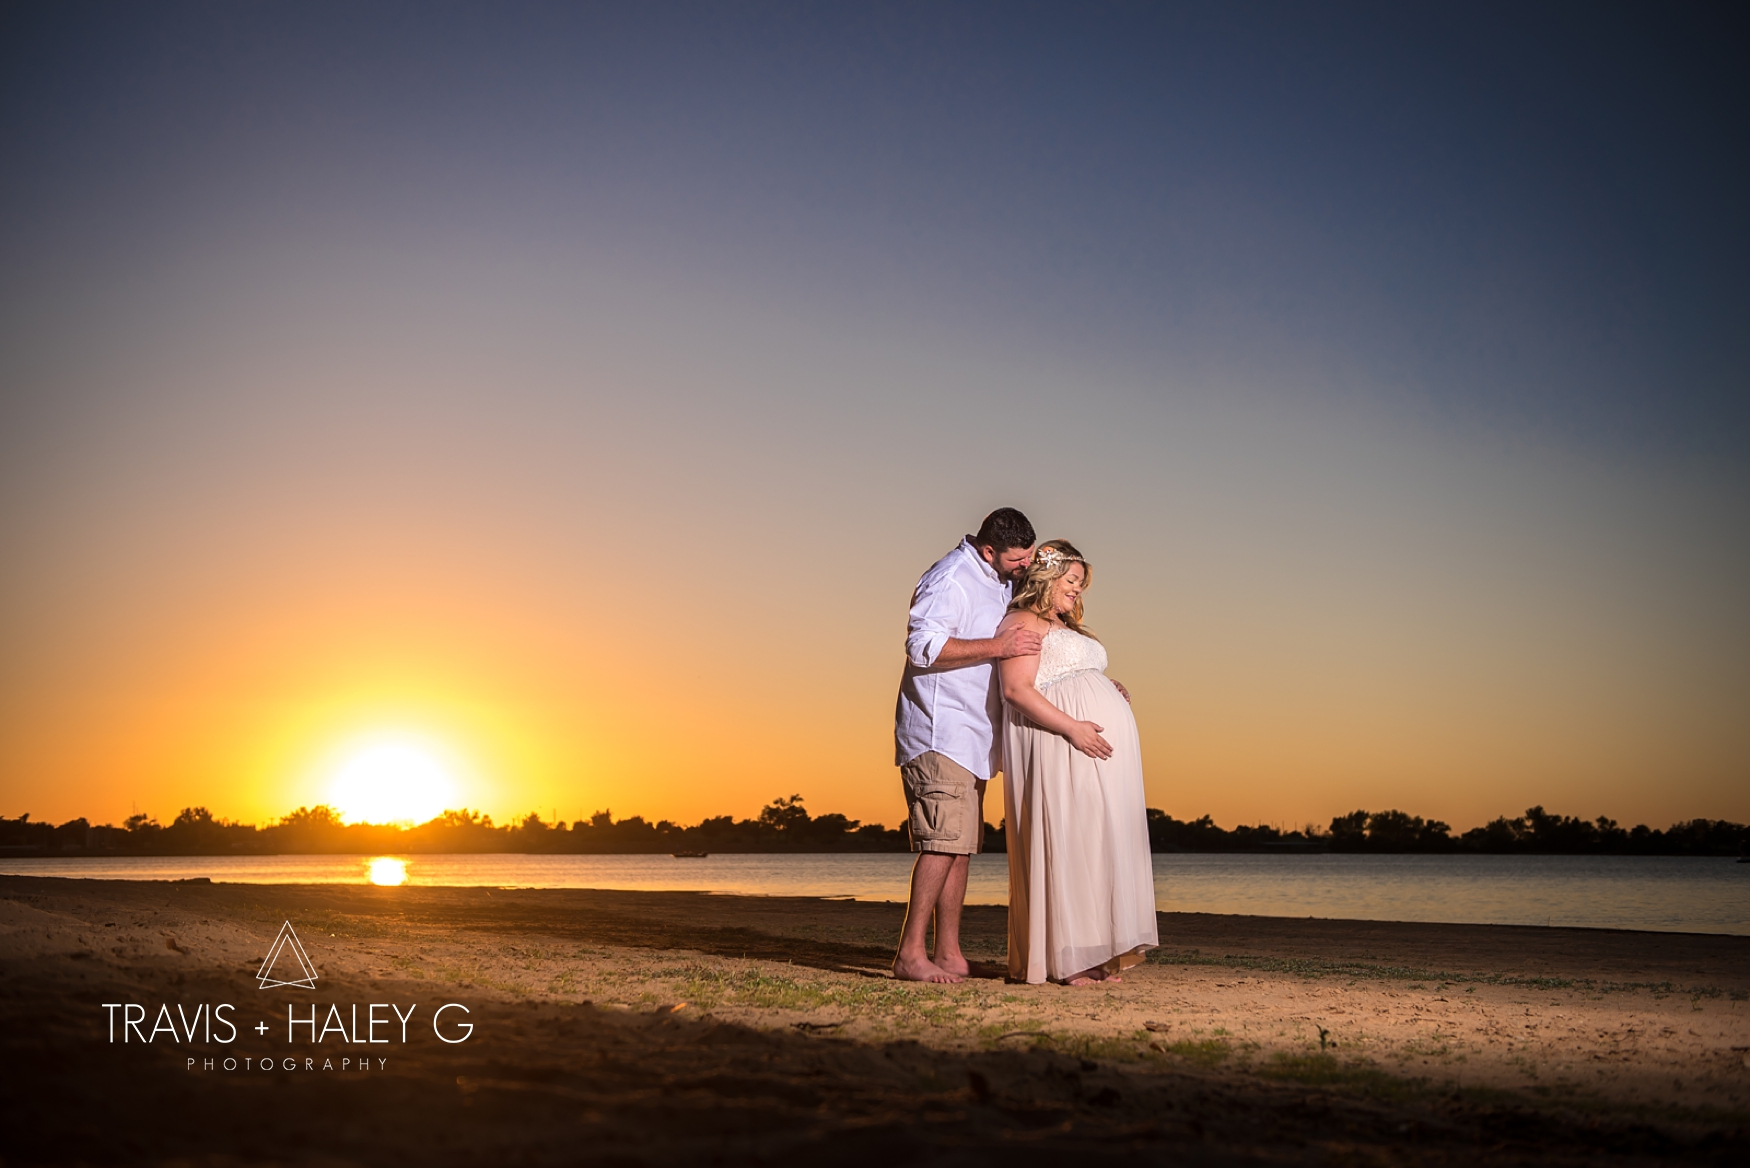 oklahoma-maternity-photographers-lake-hefner-travis-and-haley-g